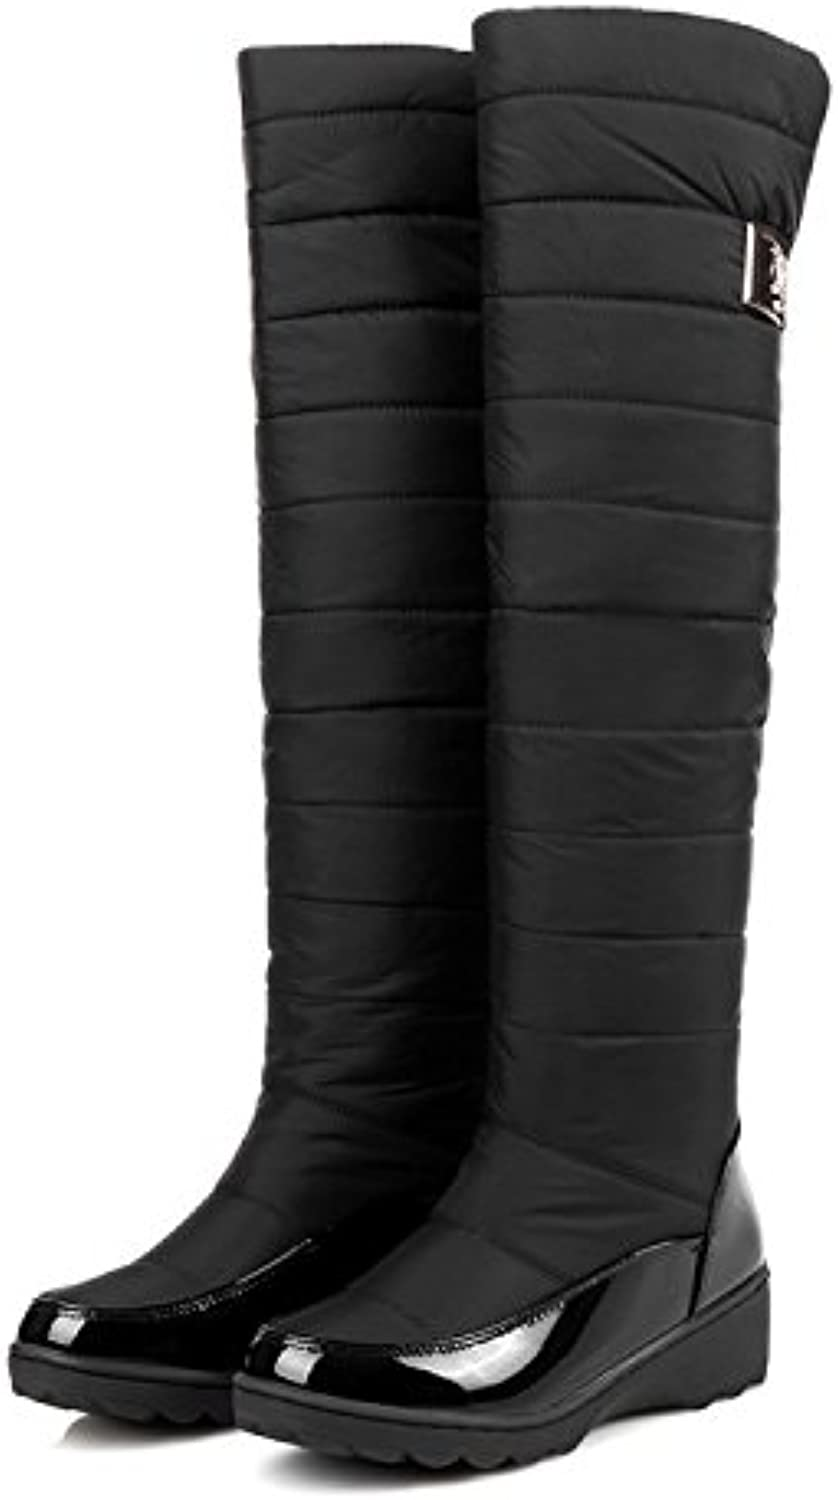 Top Shishang Winter Warm Lined mid-Waist Snow Boots Down Filled Martin Boots Female